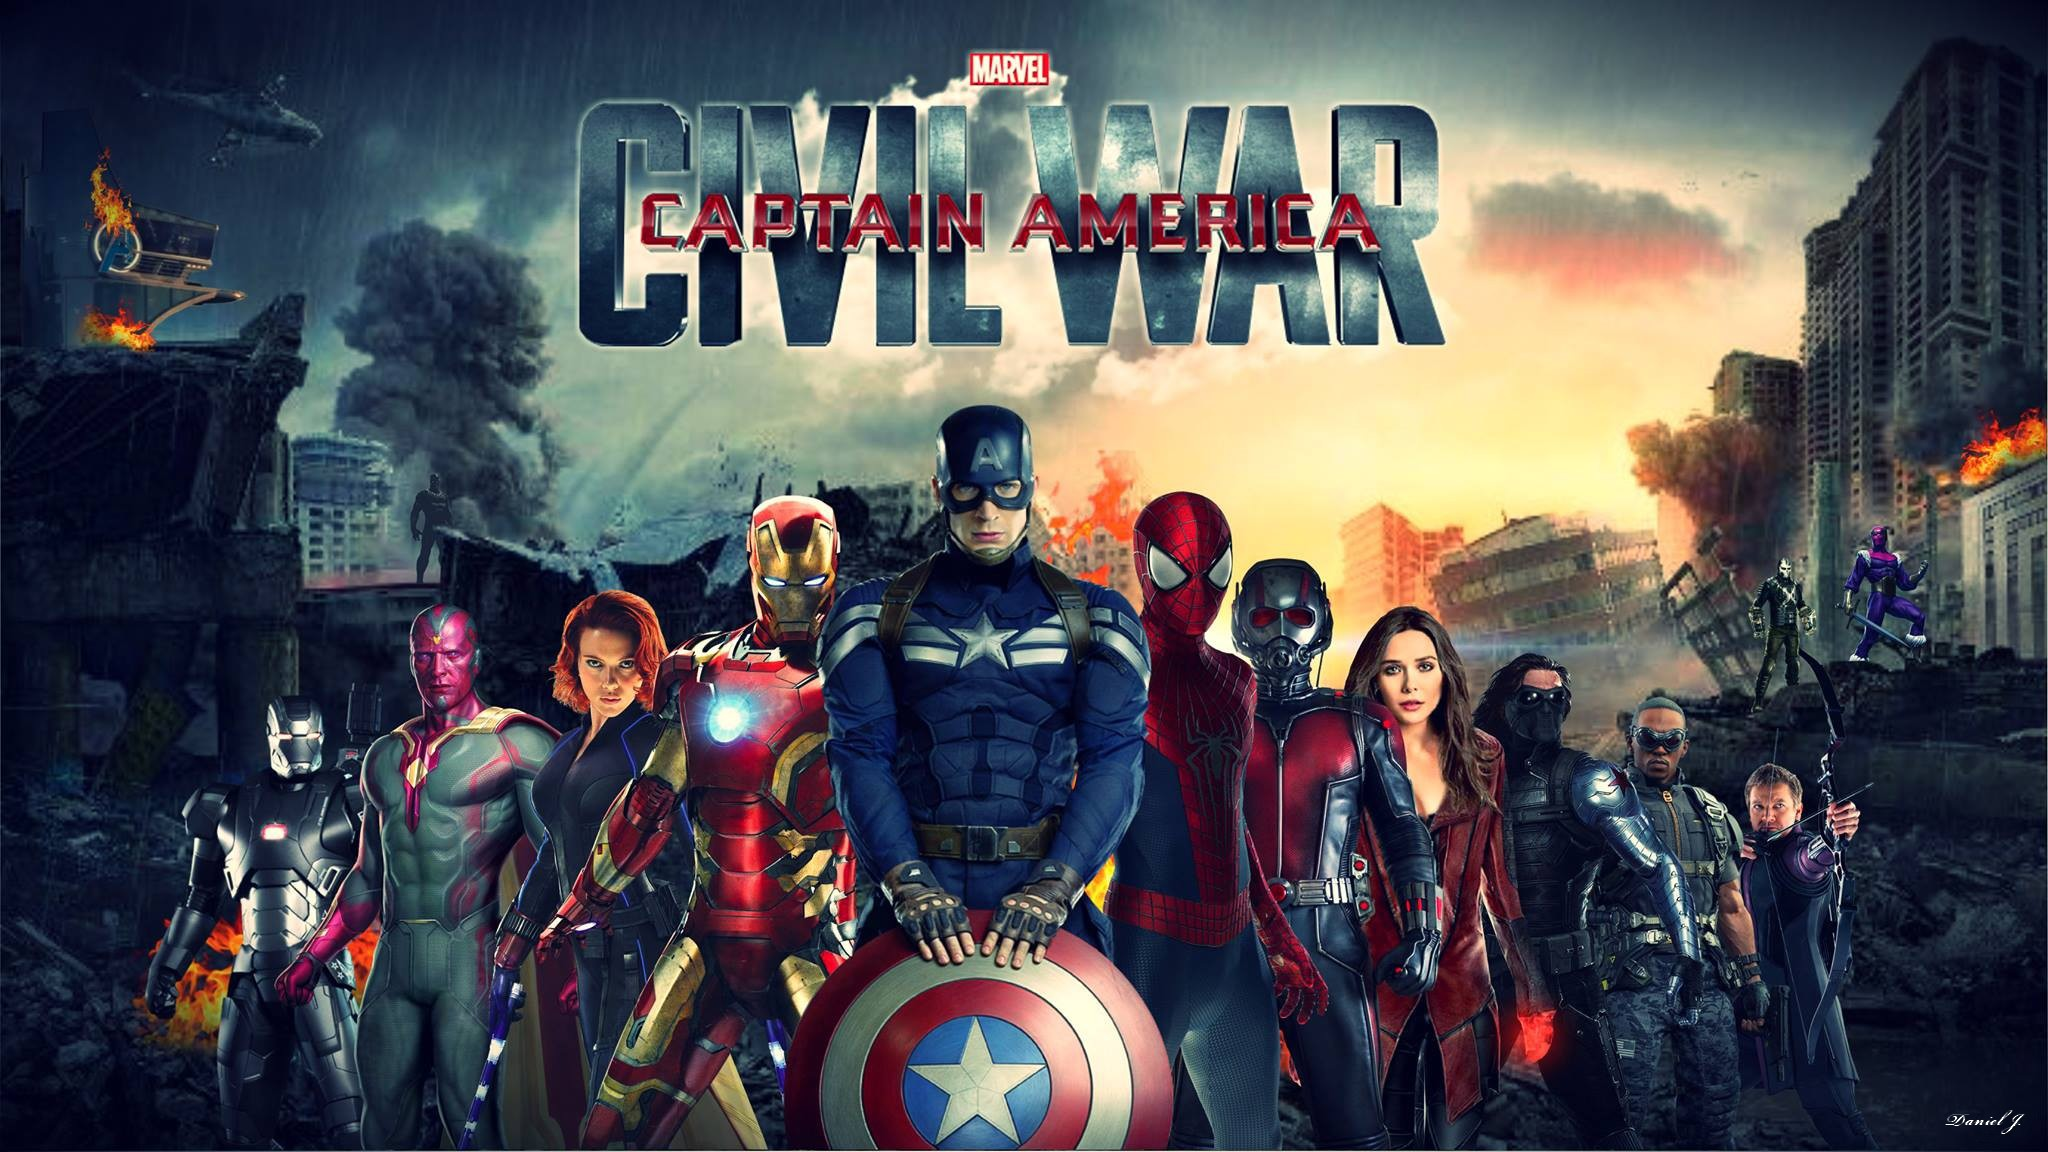 Captain-America-HD-Images-Free-download-latest-Captain-America-HD-Images-for-Computer-Mobile-iPh-wallpaper-wpc9003341